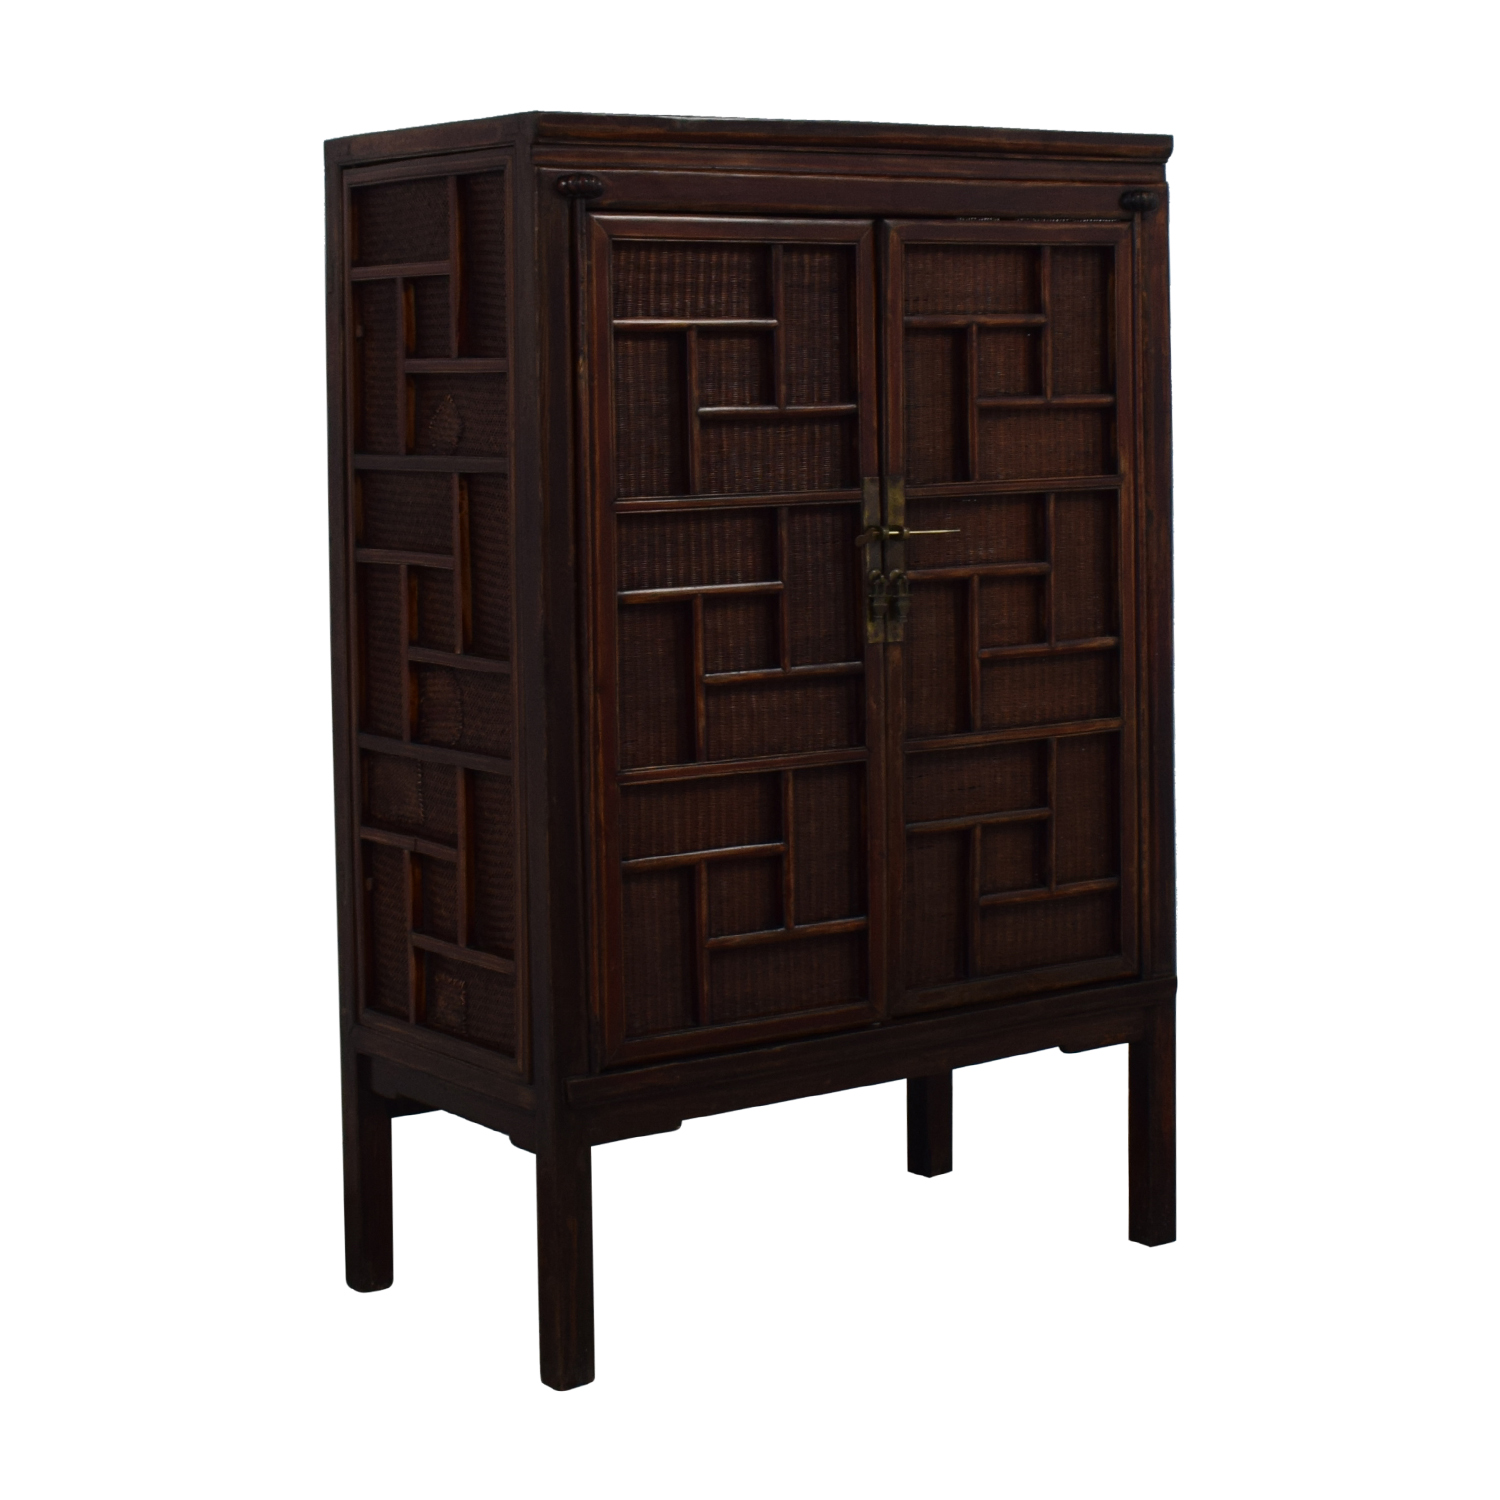 Rustic Chinese Storage Cabinet on sale